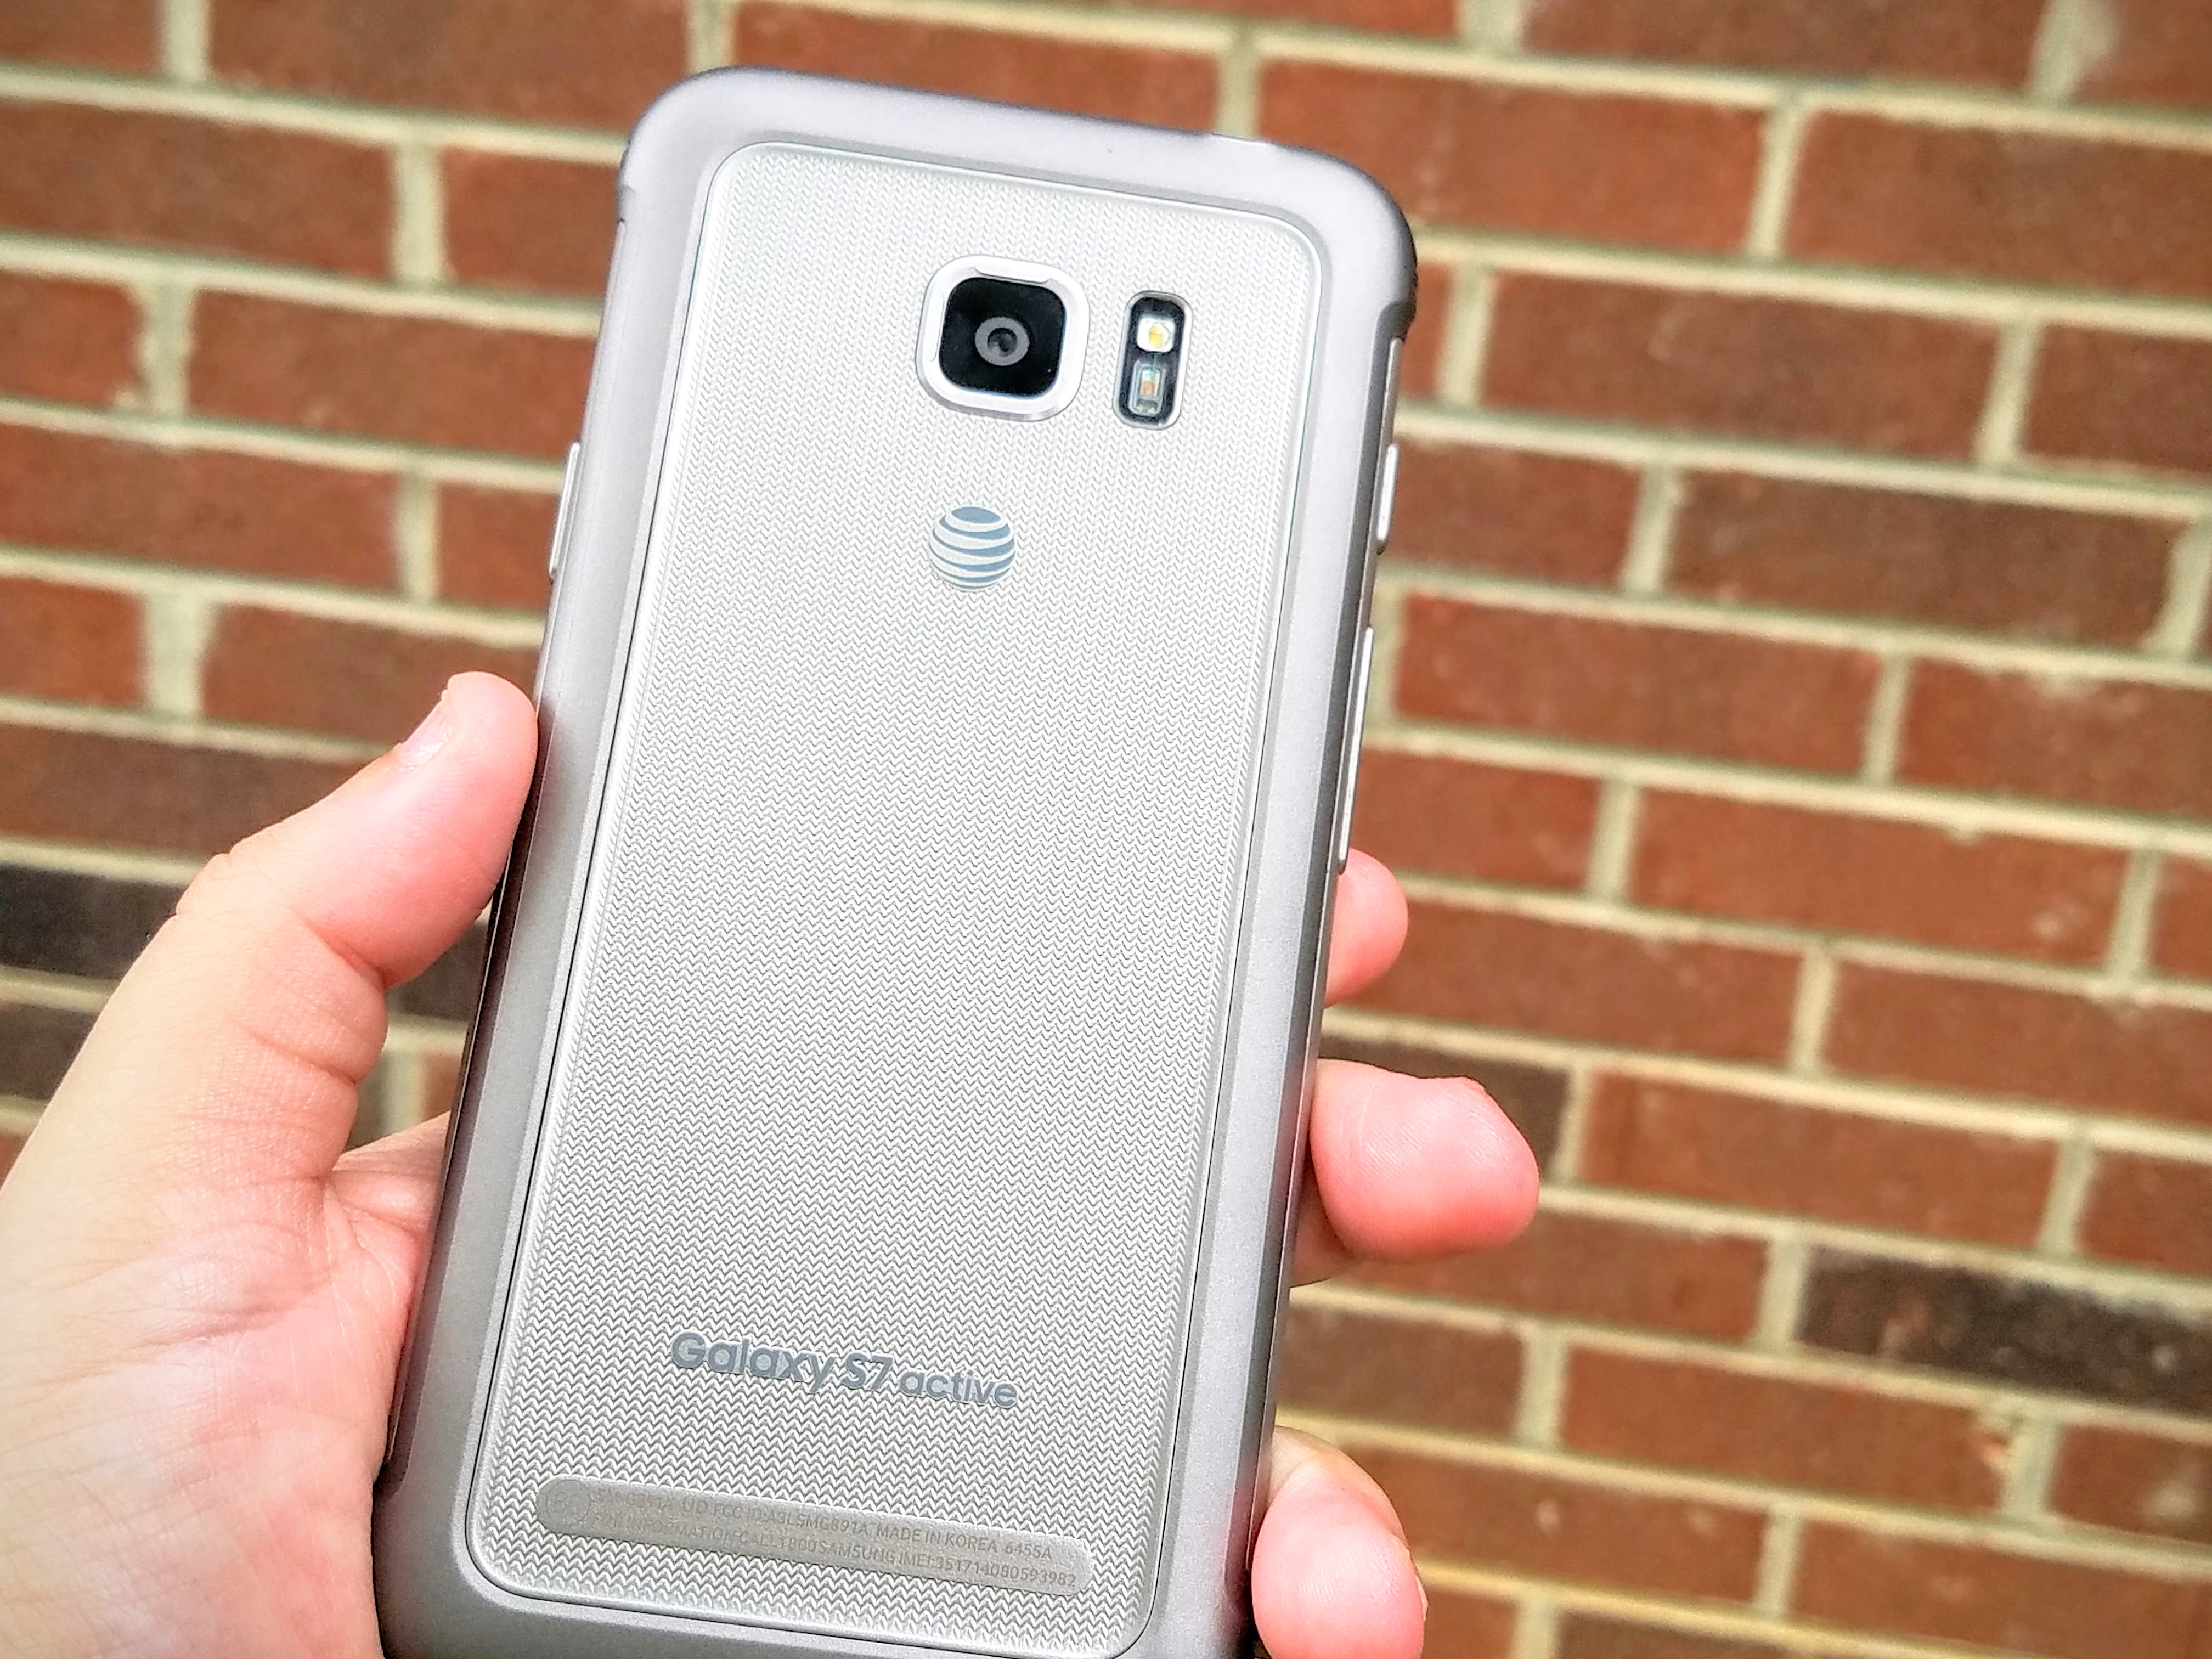 Galaxy S7 Active review: Samsung makes the Active attractive